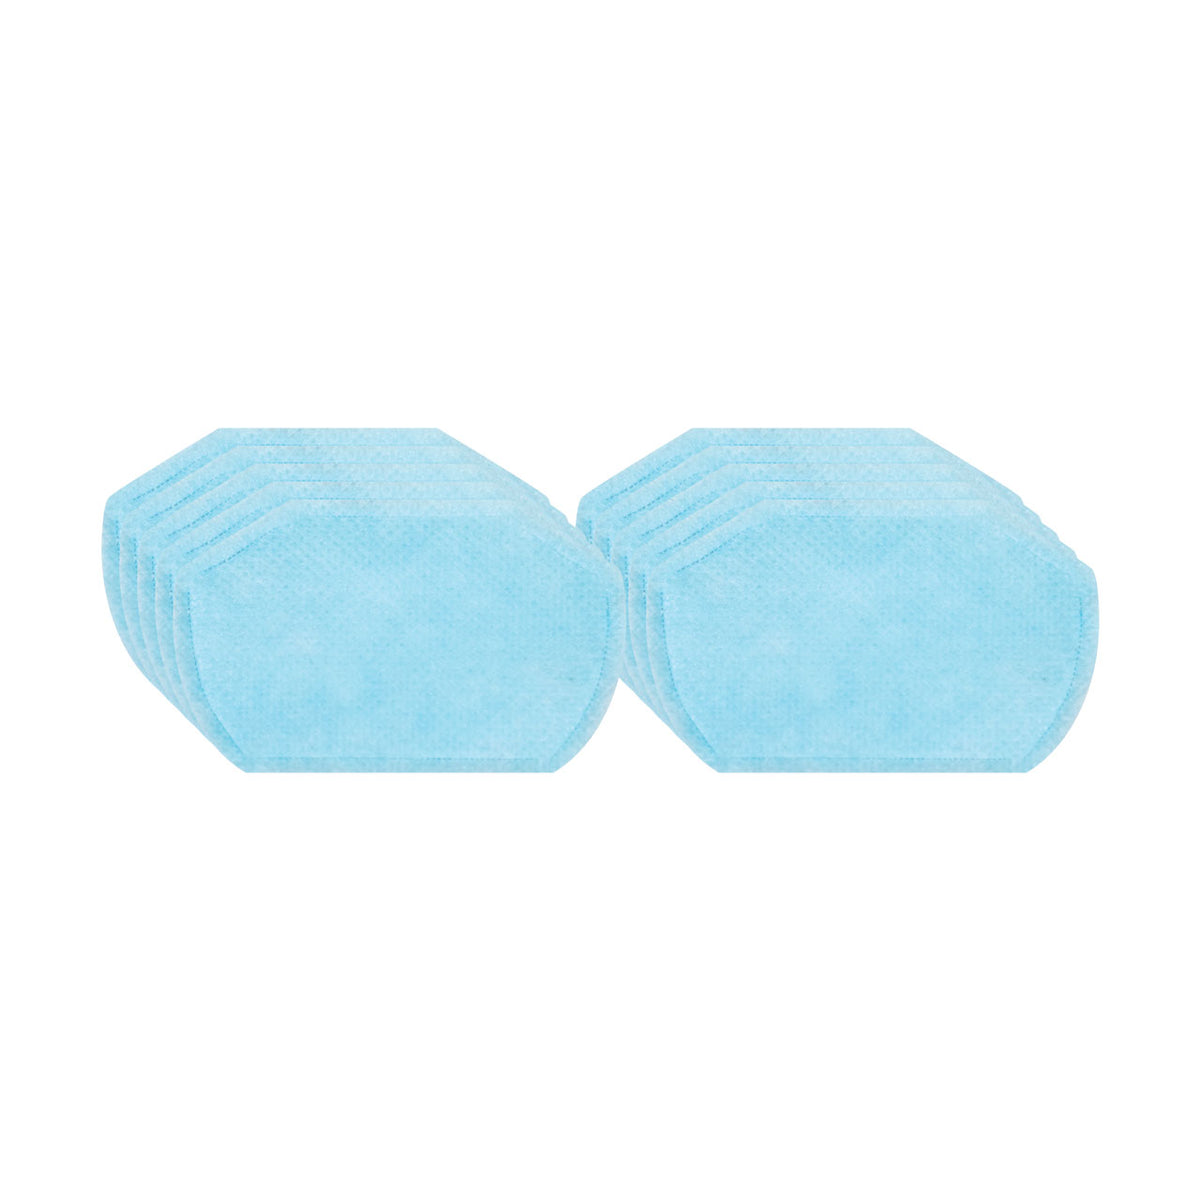 Aspen Air 4-Ply Surgical Filters